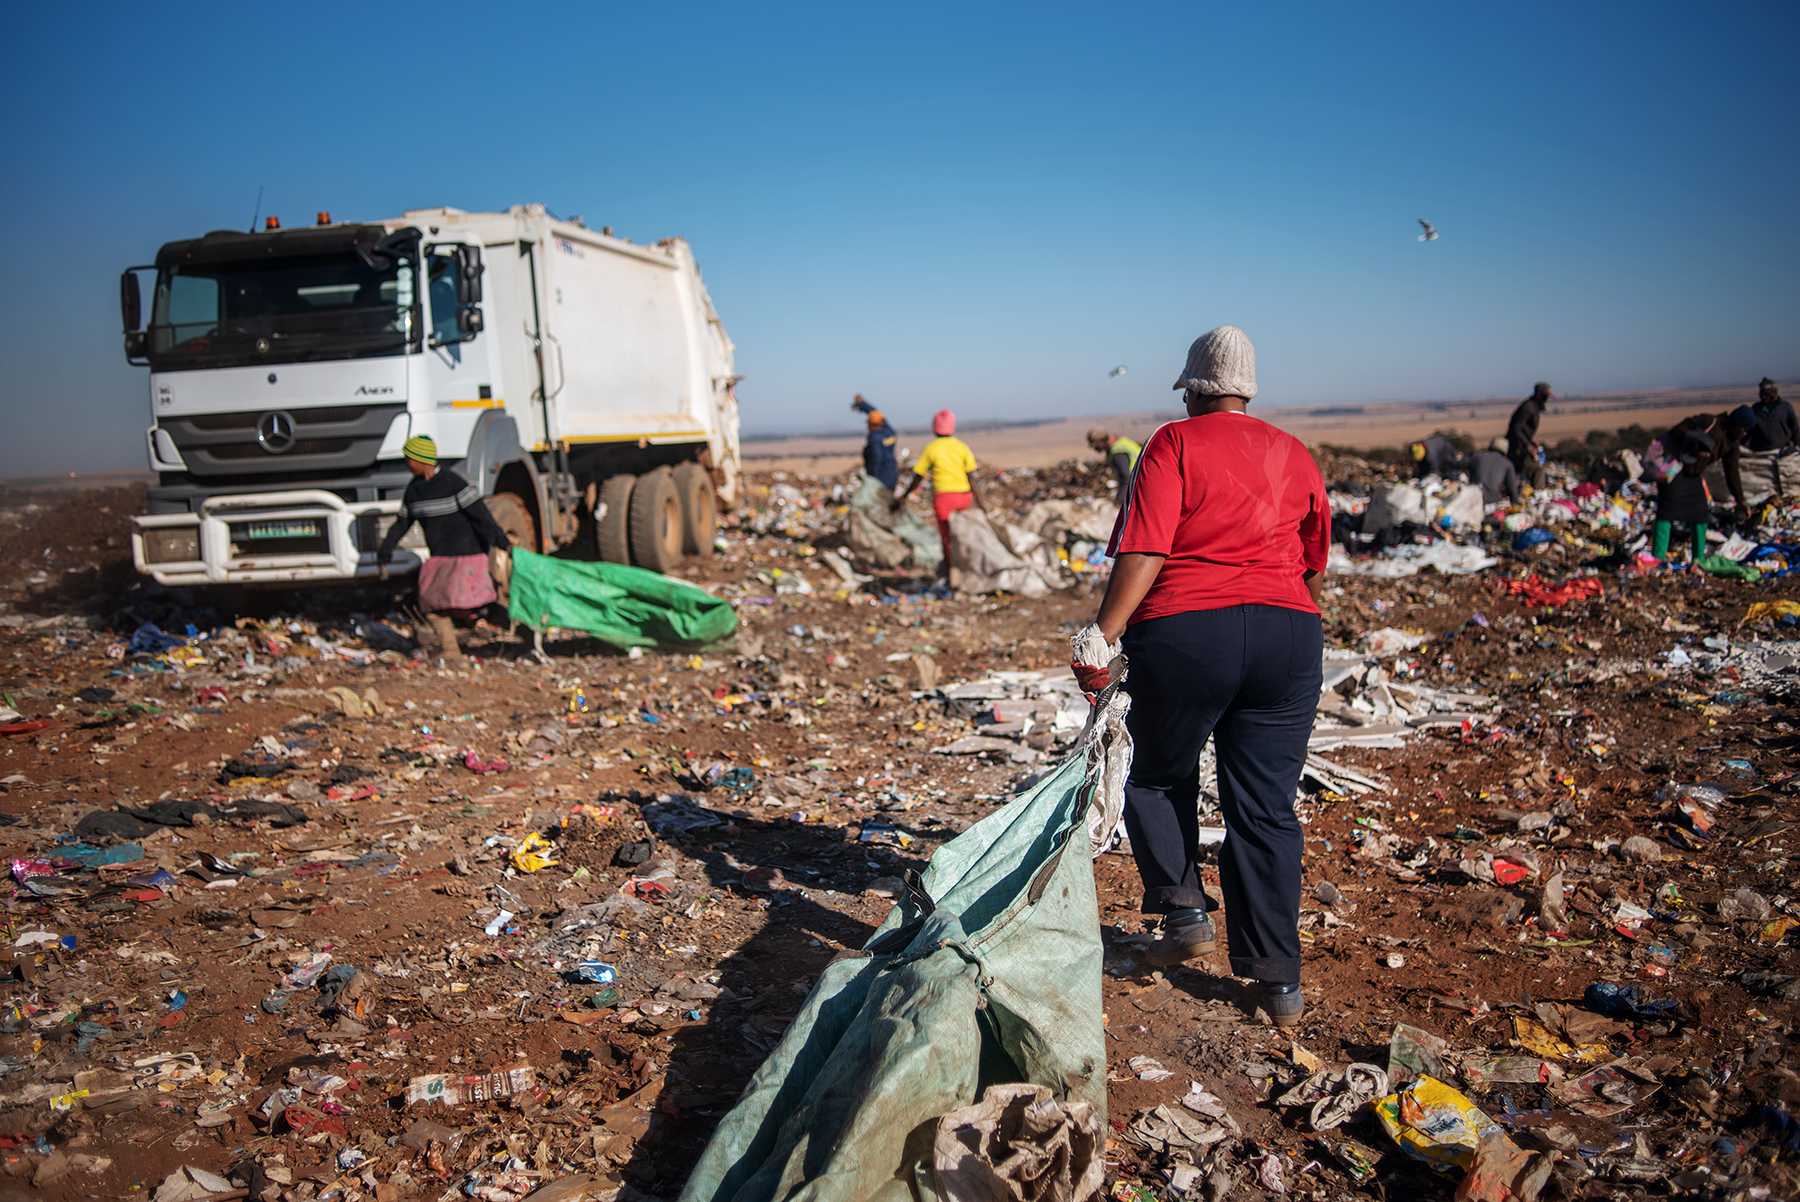 Eva Mokoena, a 33 years old South African informal waste picker, approaches a garbage truck at the Palm Springs landfill in the outskirt of Johannesburg, South Africa, on June 28, 2019.